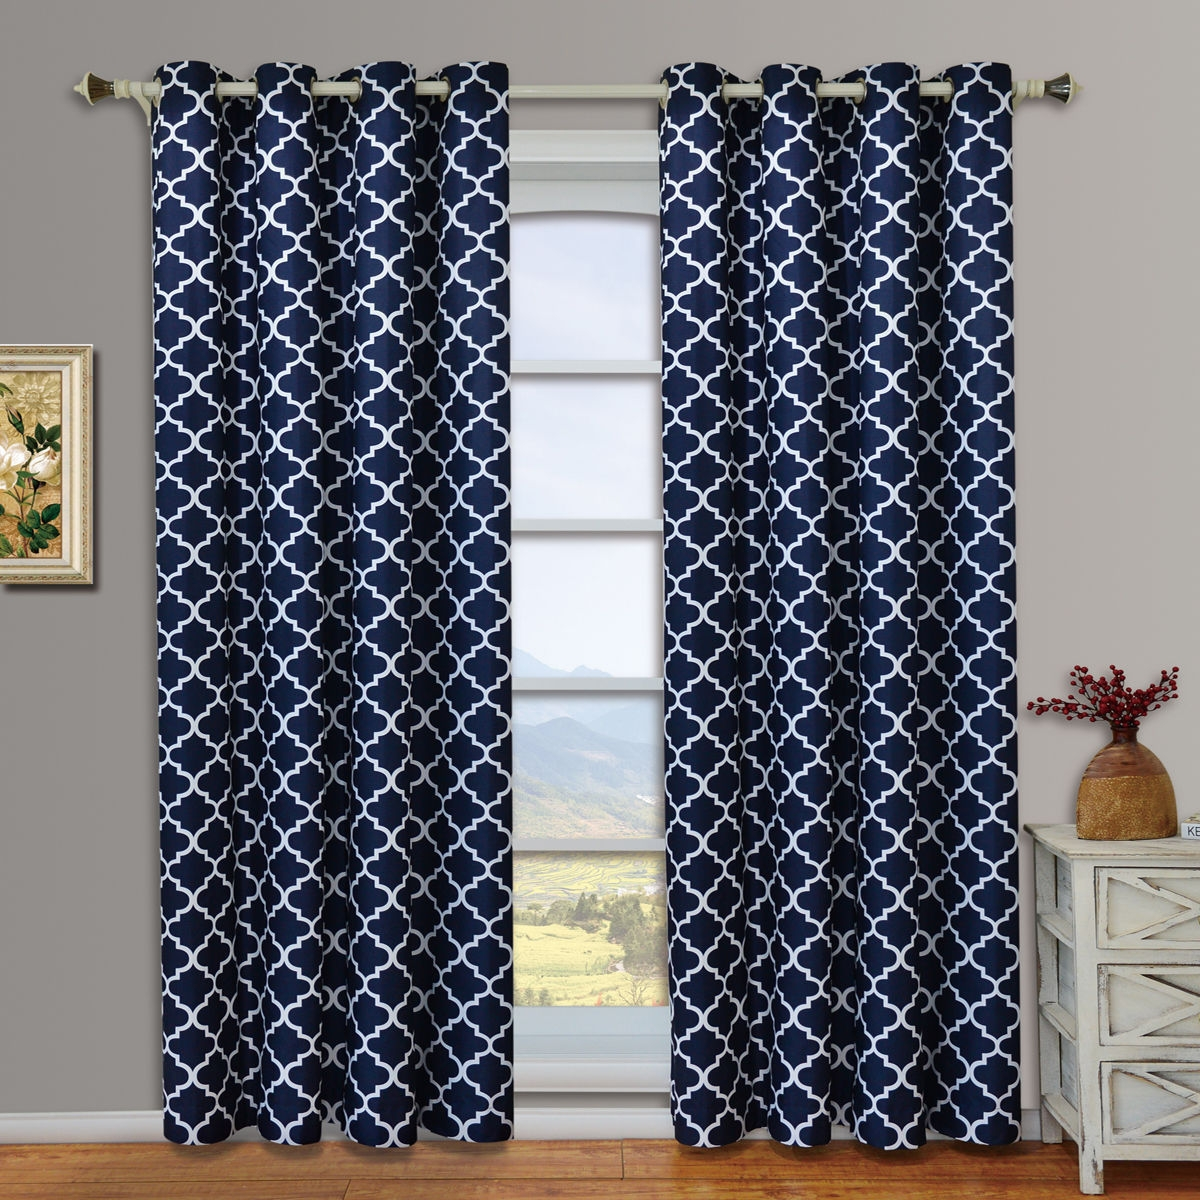 What Are The Best Thermal Drapes Ebay With Regard To Thermal Insulation Curtains (Image 14 of 15)